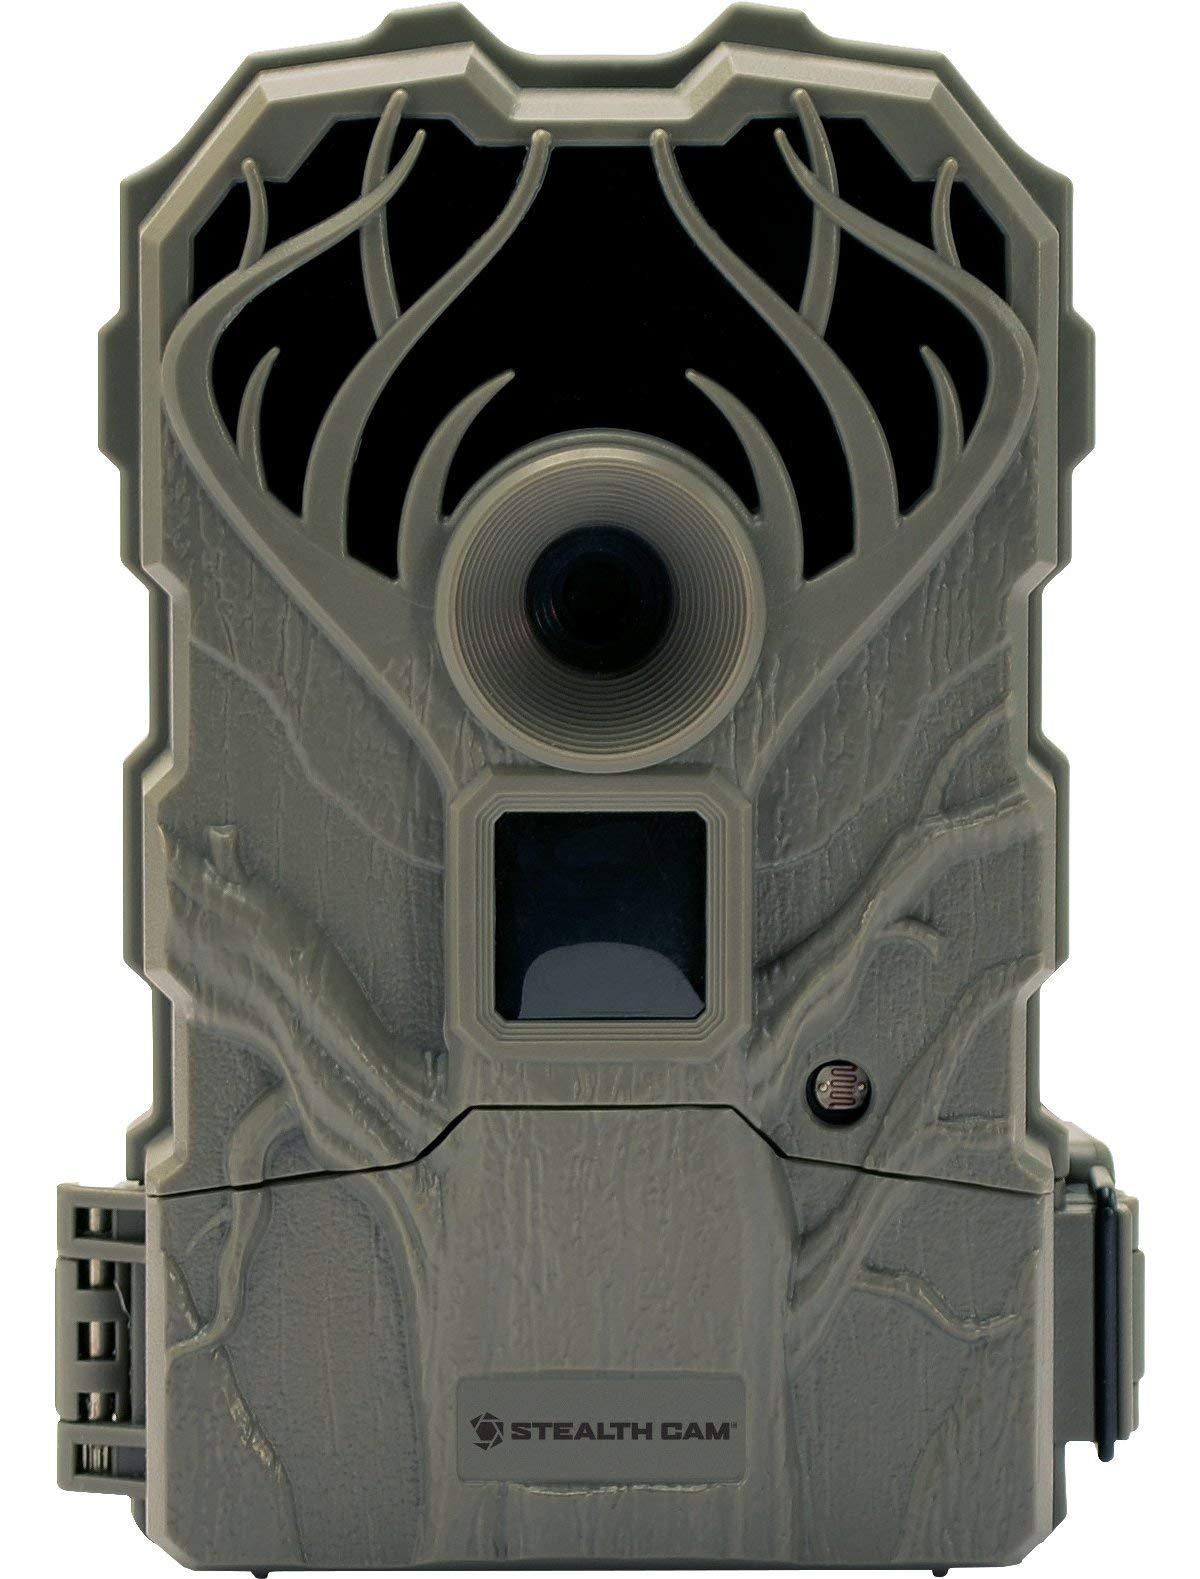 QS12FX Stealth Cam 12.0 MP Scouting Camera